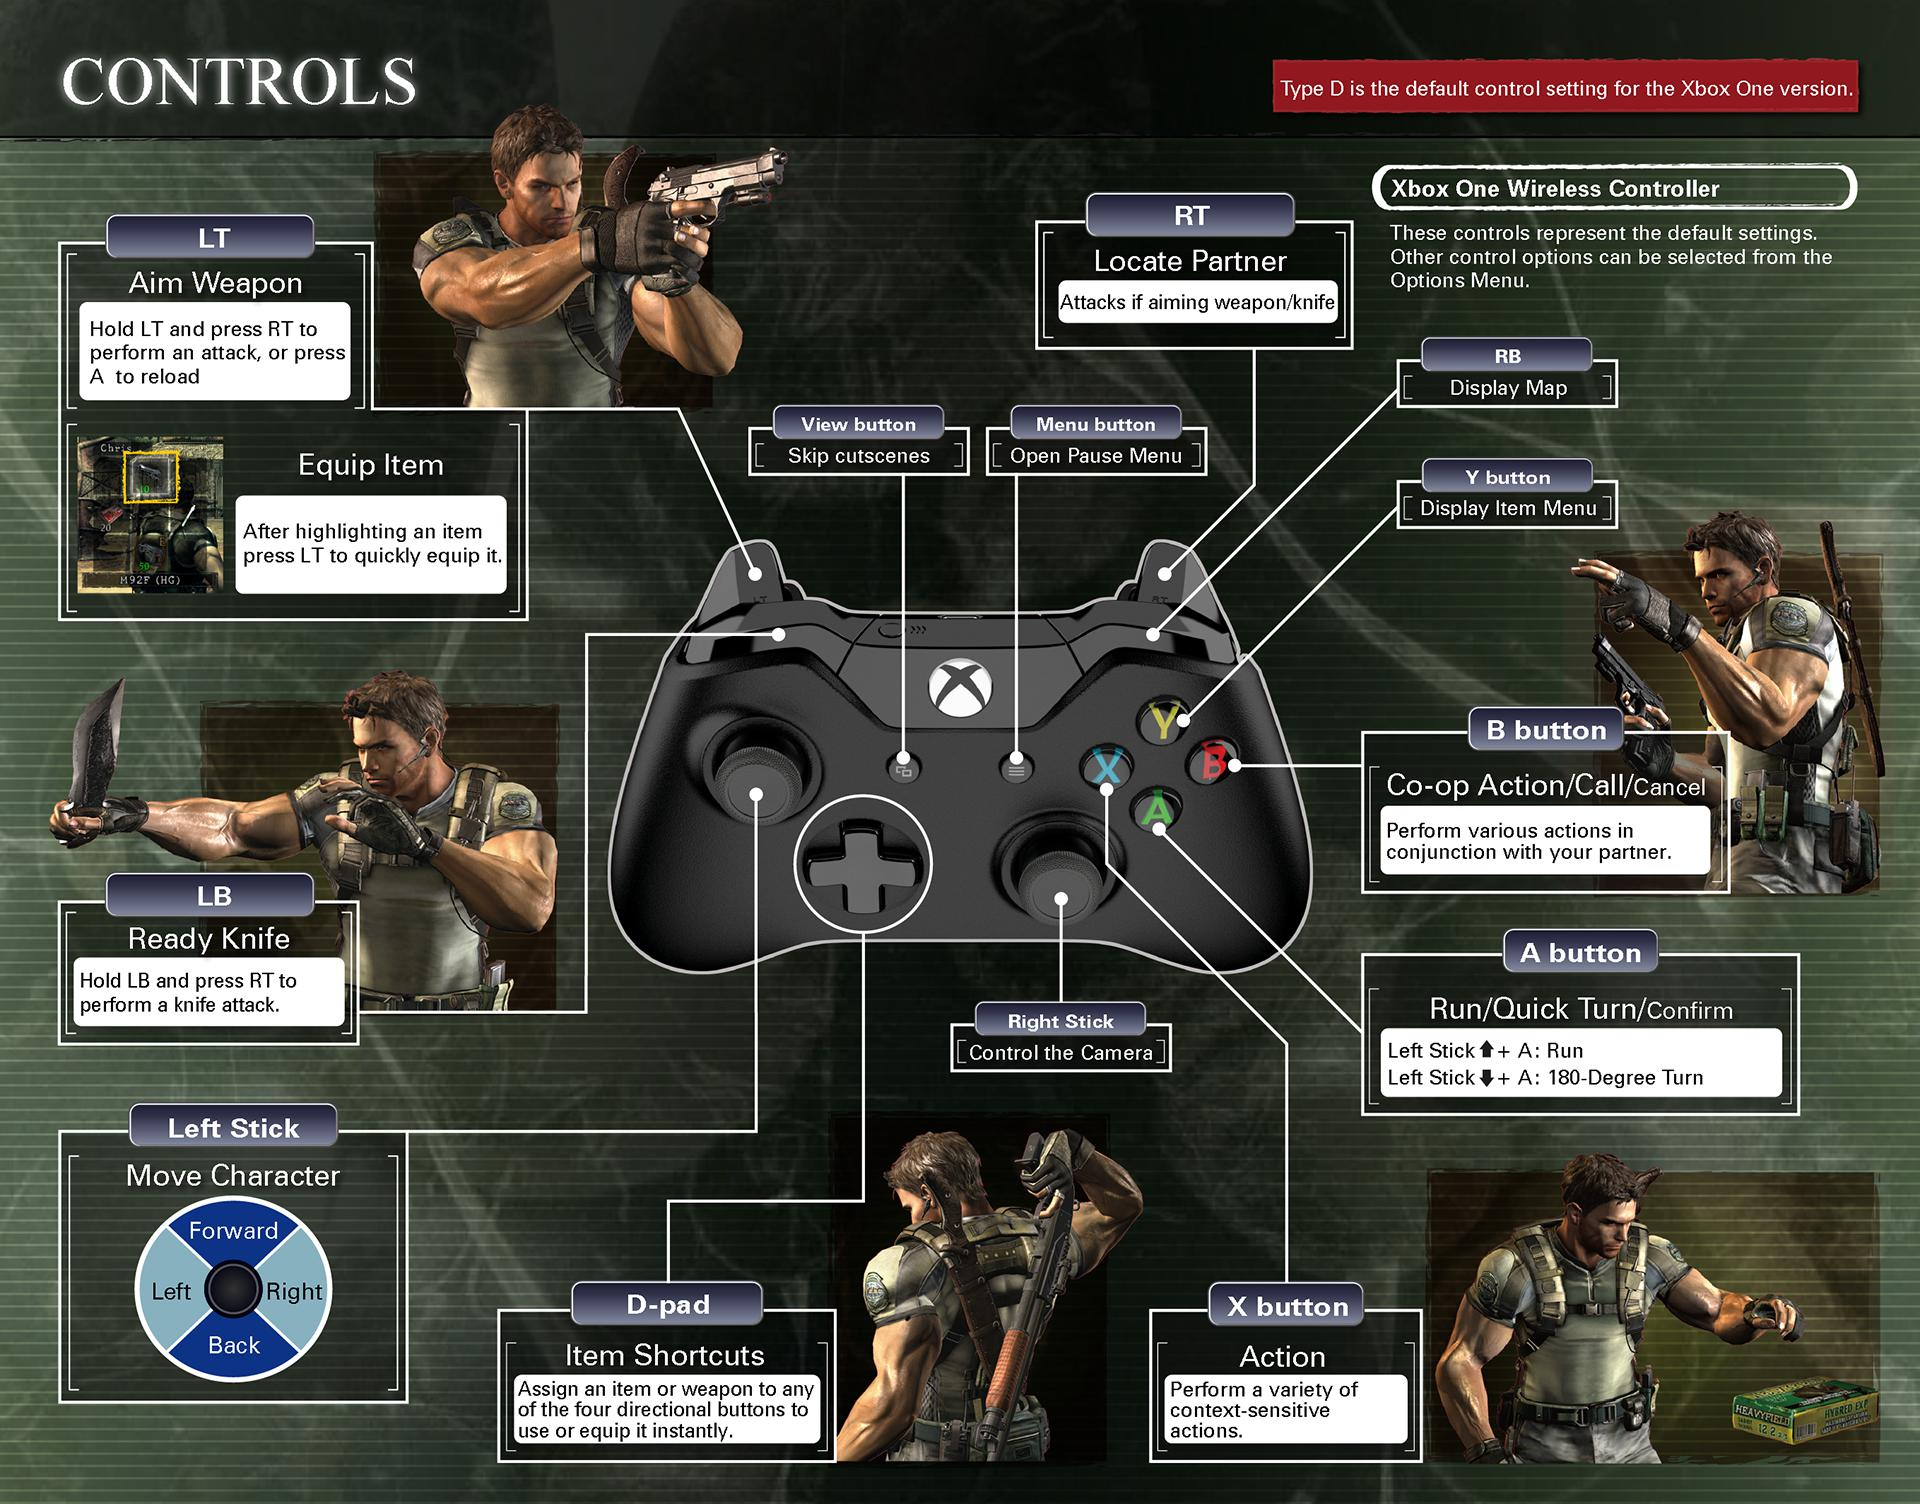 RESIDENT EVIL 5 Official Web Manual on